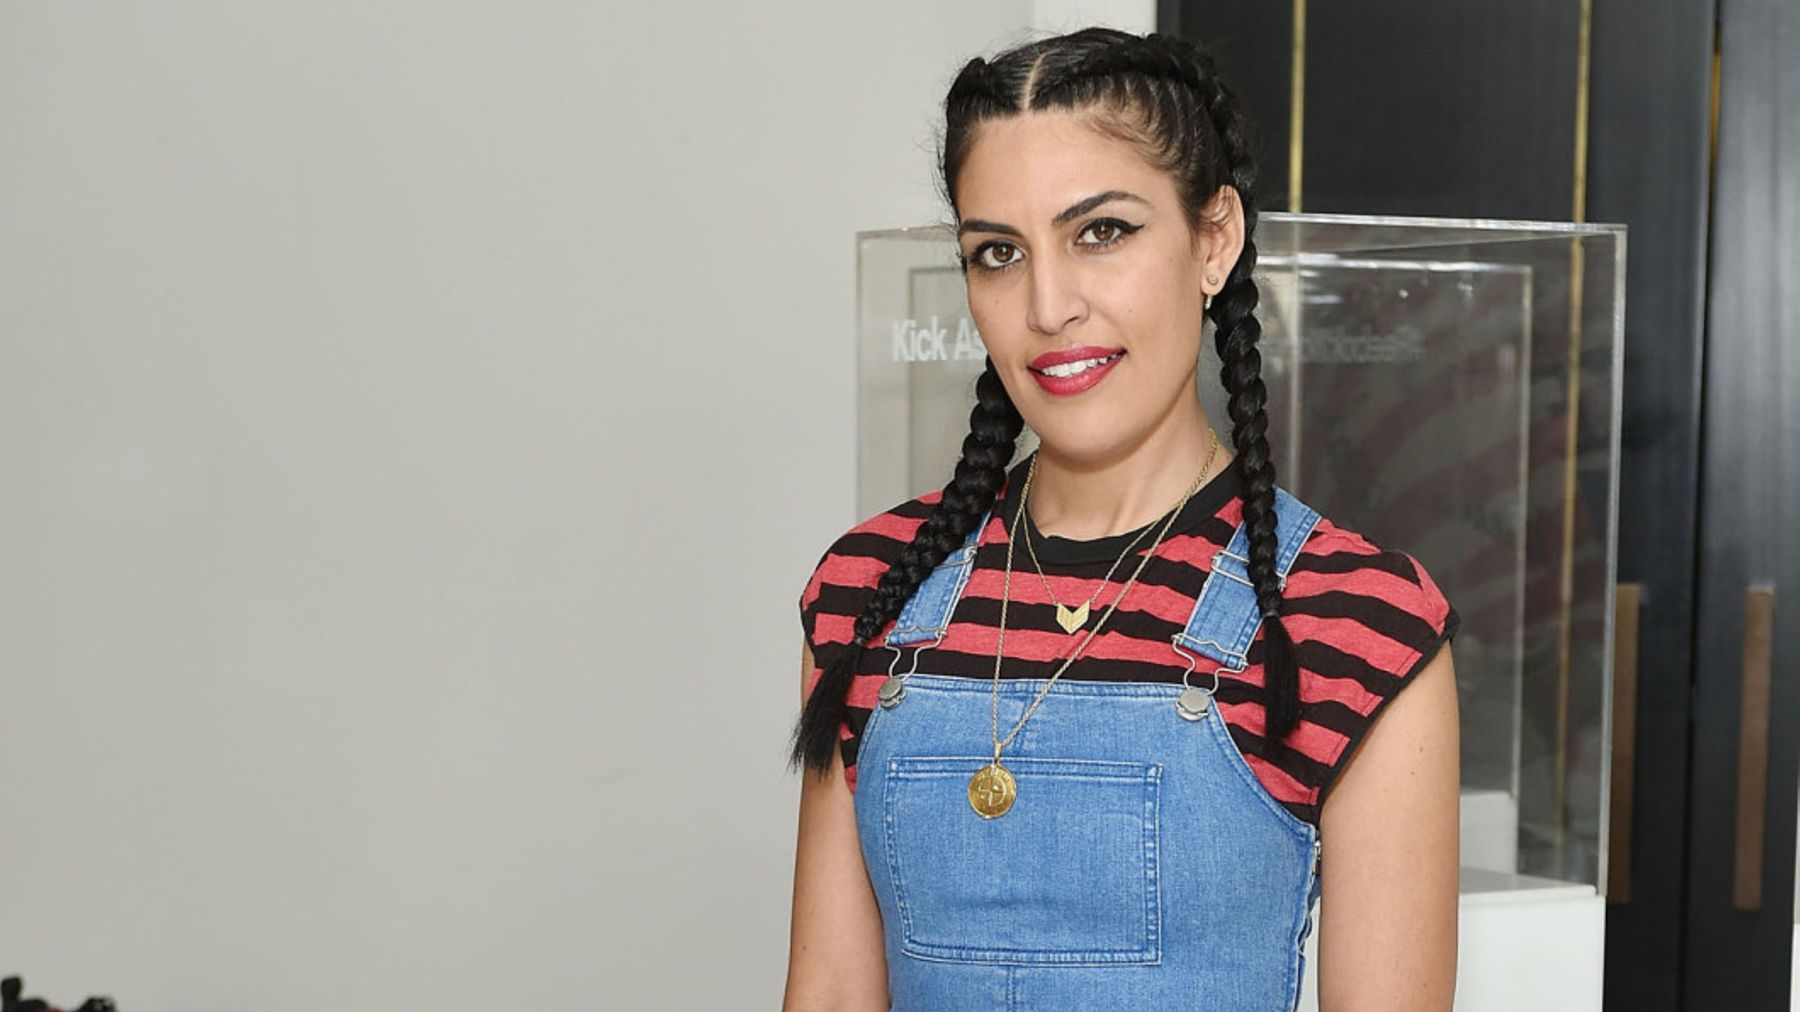 Melody Ehsani has an estimated net worth of $2 million, all earned from her fashion designing business.